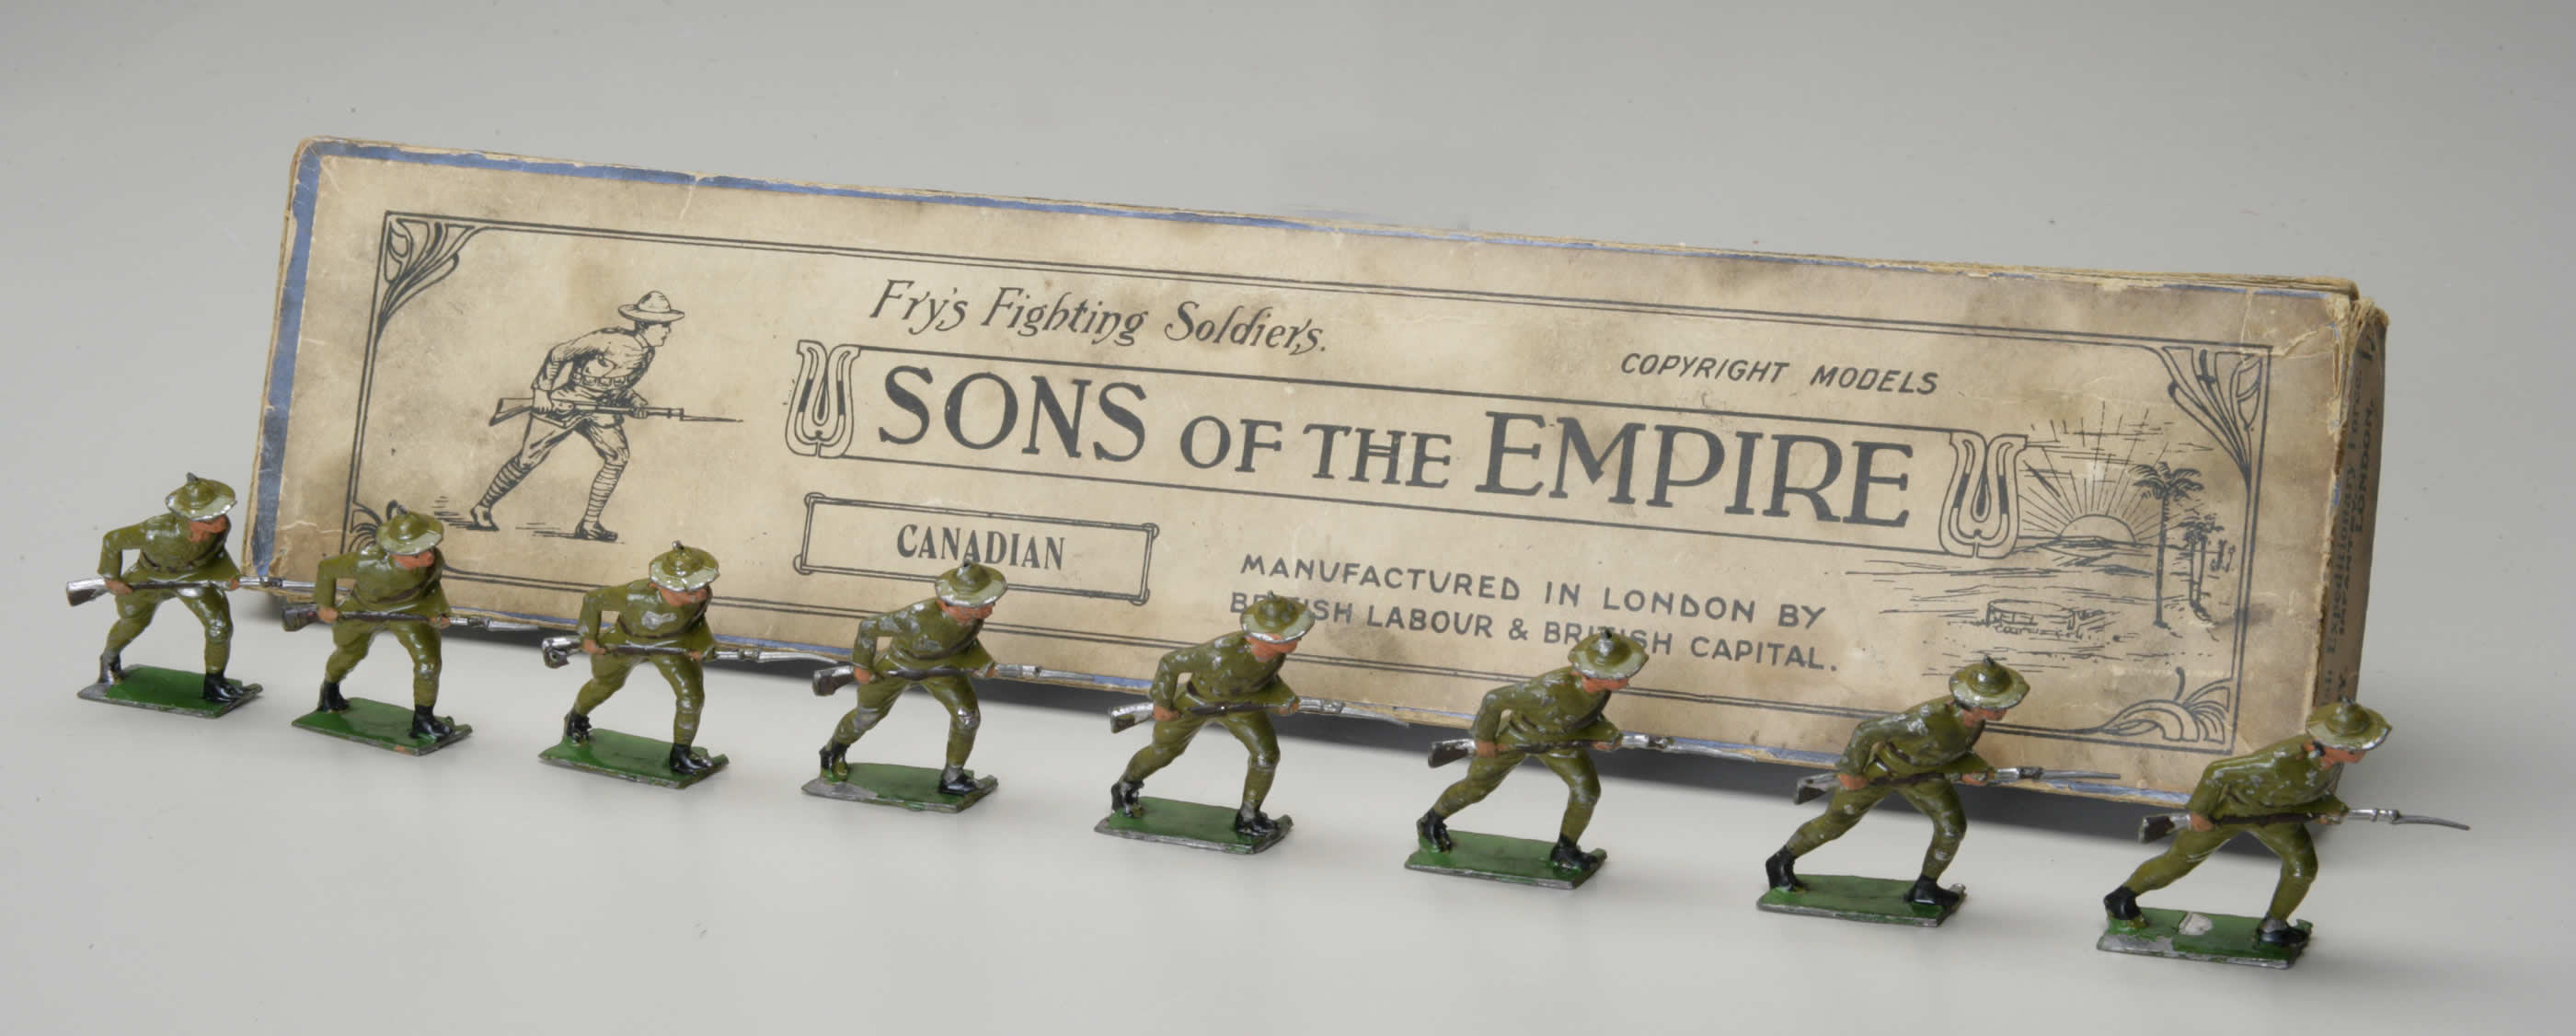 Toys and Models - Toy Soldiers | Canada and the First World War